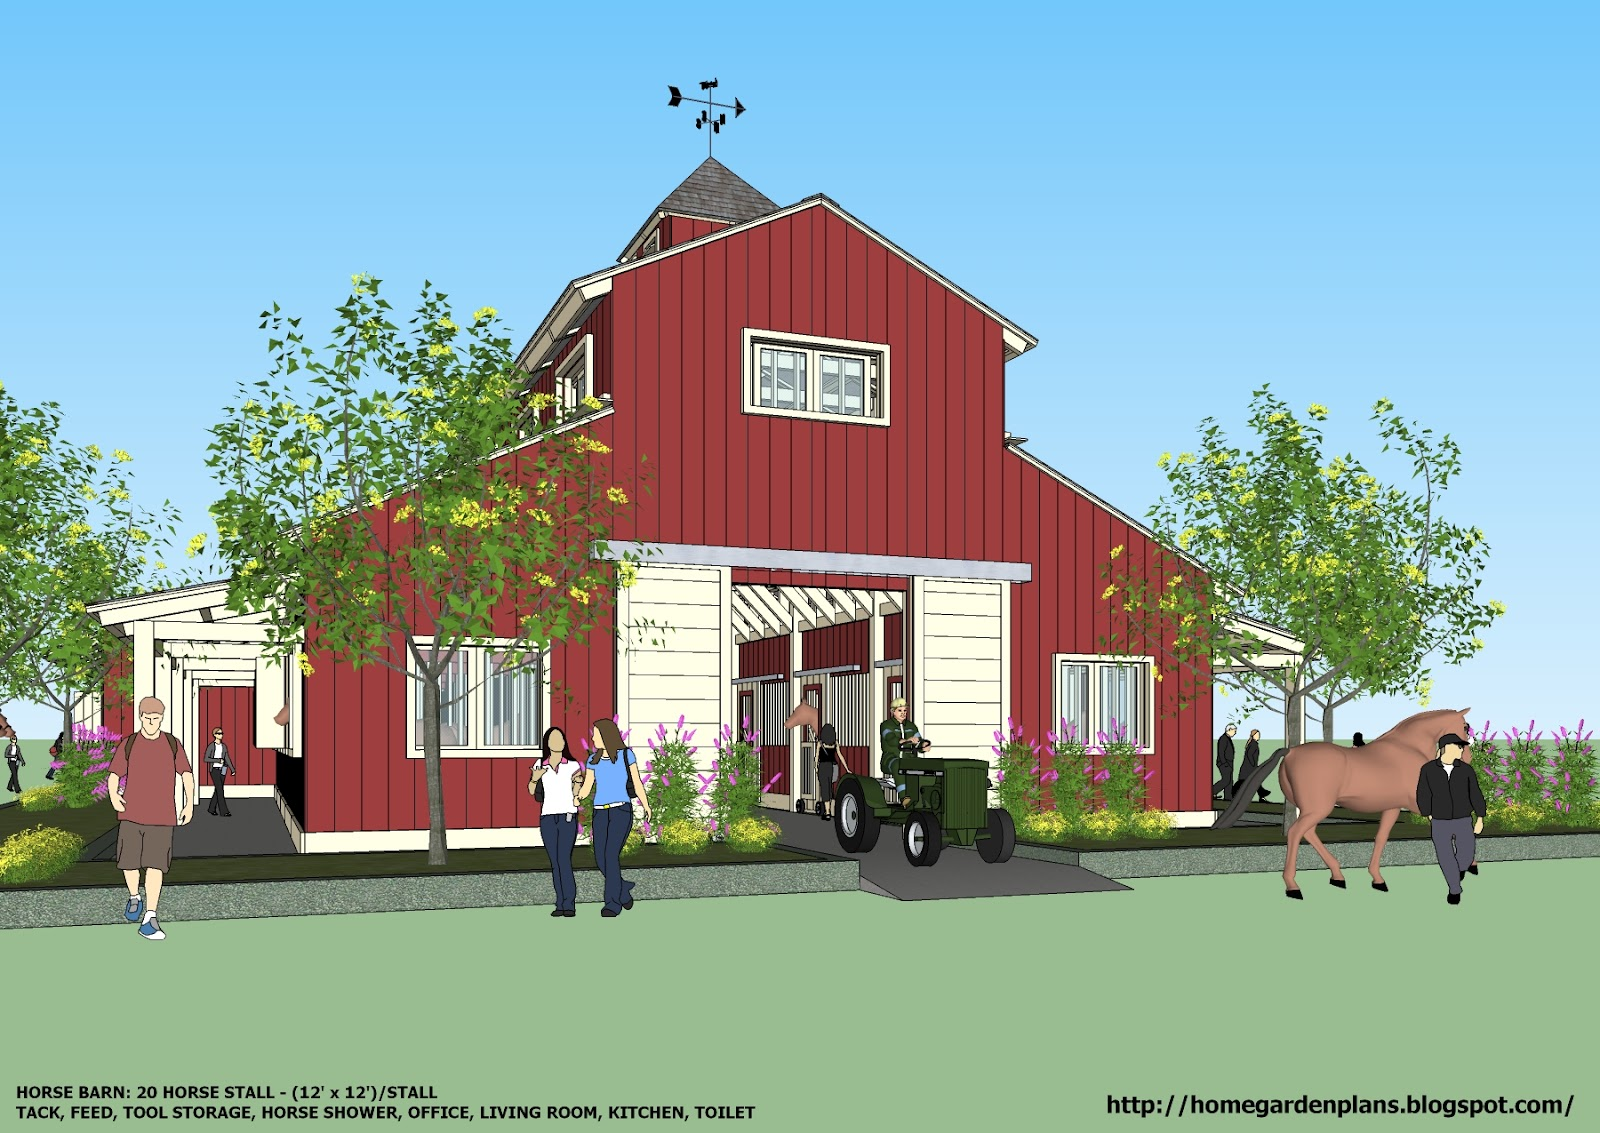 Home Garden Plans B20h Large Horse Barn For 20 Horse: barn designs